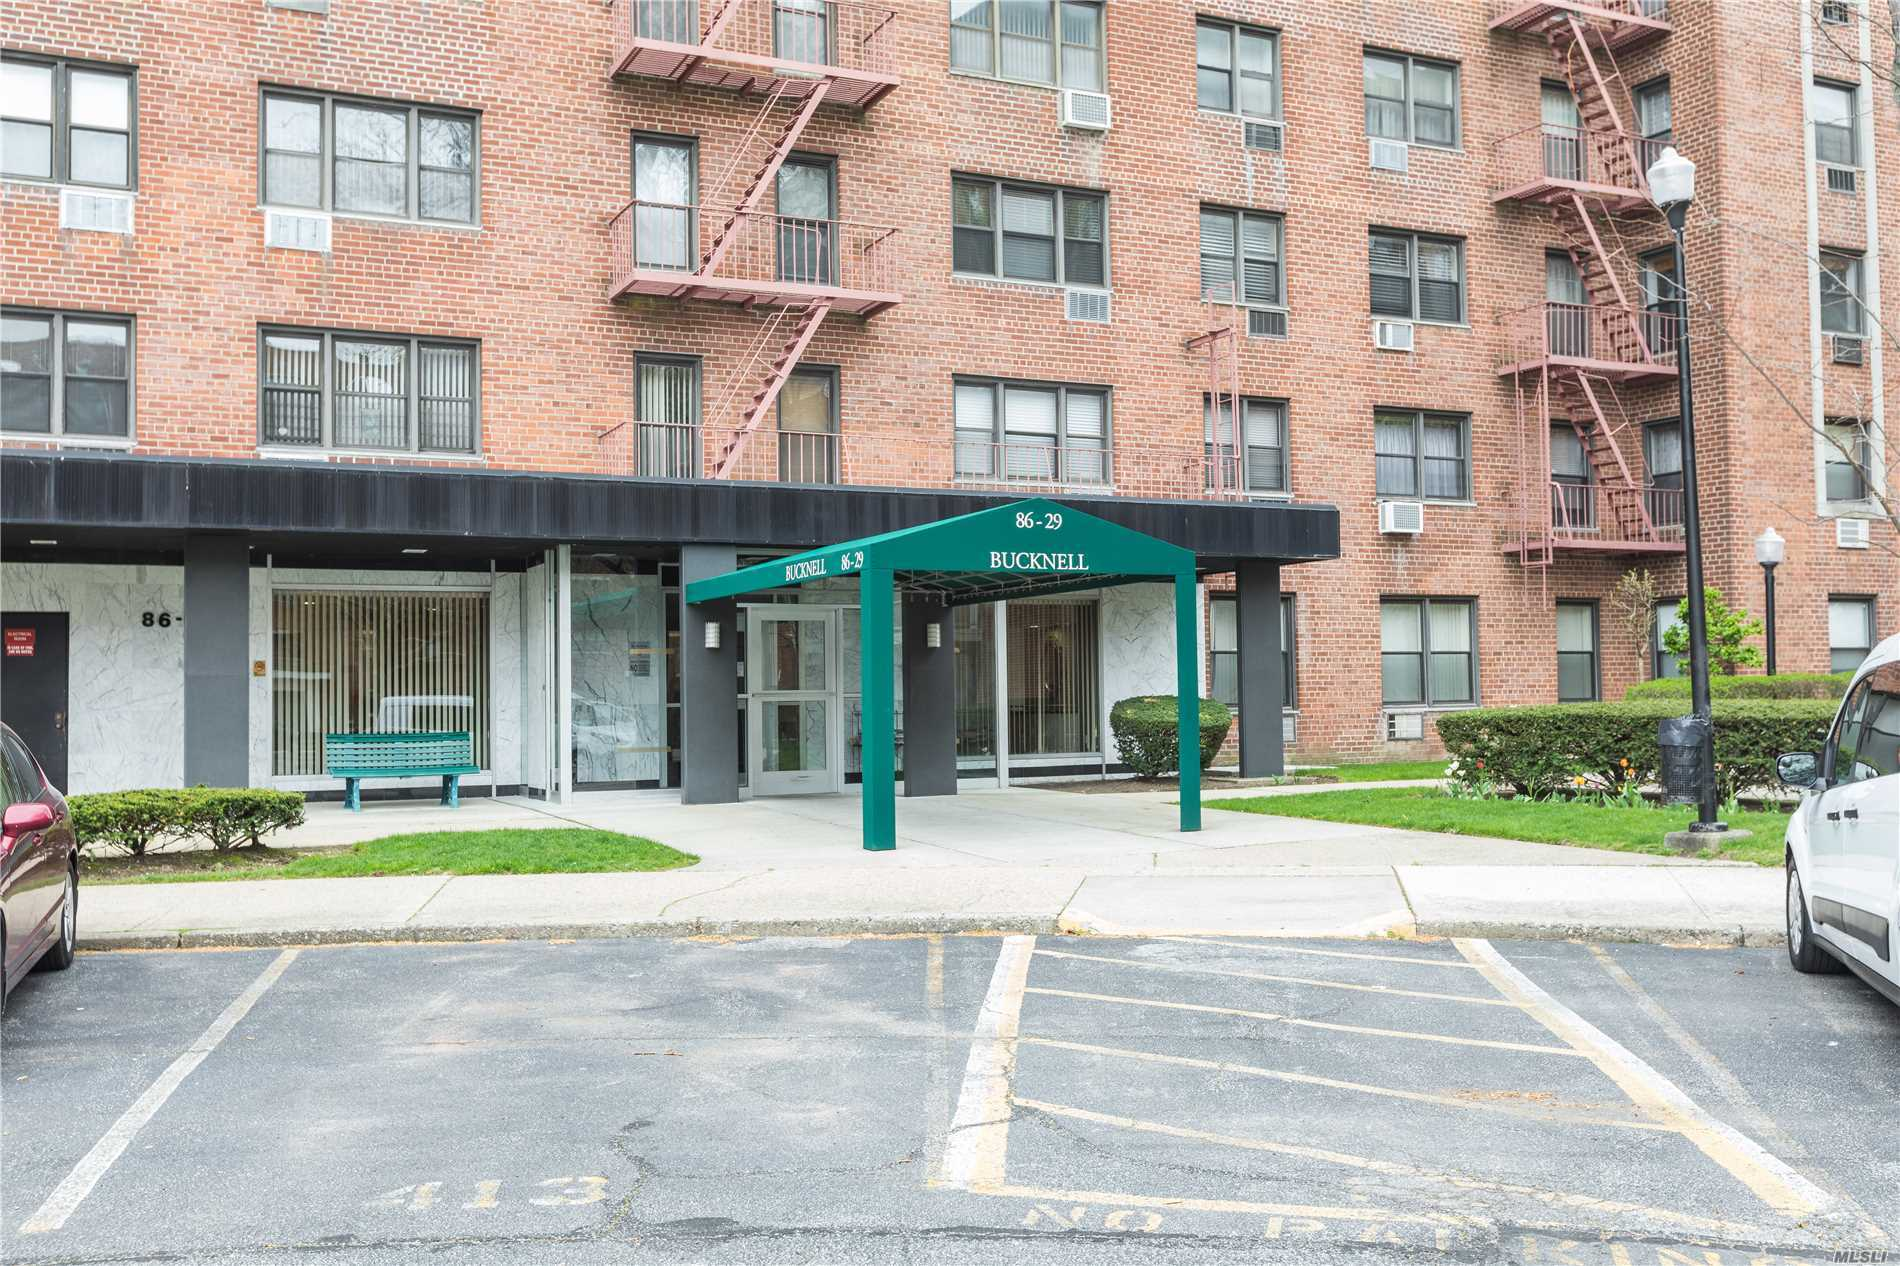 Welcome to Lindenwood Owners Corp. Beautifully well maintained grounds. This unit entertains 2 large bedrooms, lots of closet space thru-out. Spacious living room, dining area and kitchen with access to a large terrace with wonderful tree lined views. A wonderful place to call home with easy access to everything.